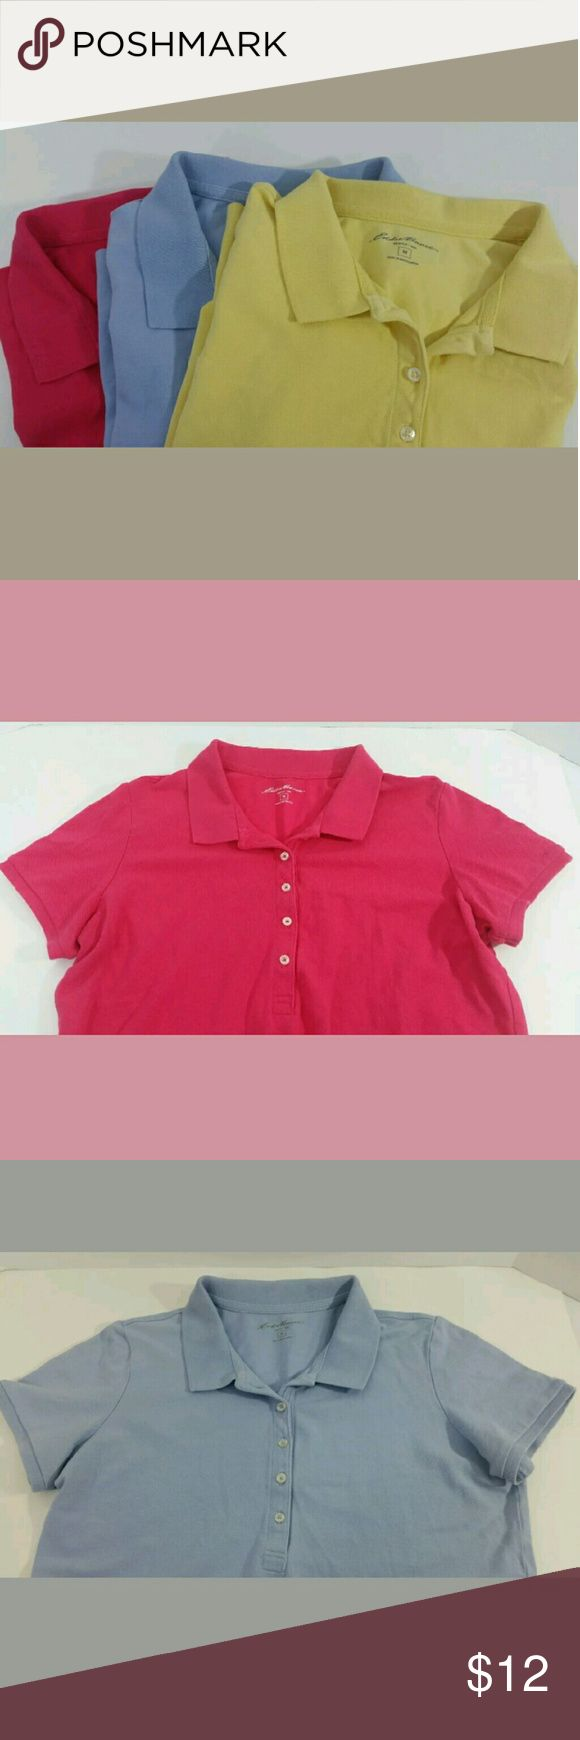 3 Eddie Bauer Ladies Polo Shirts Lot of 3 Eddie Bauer Ladies Polo Shirts  Material: 95% cotton, 5% spandex  Pink, yellow & light blue Eddie Bauer Tops Tees - Short Sleeve